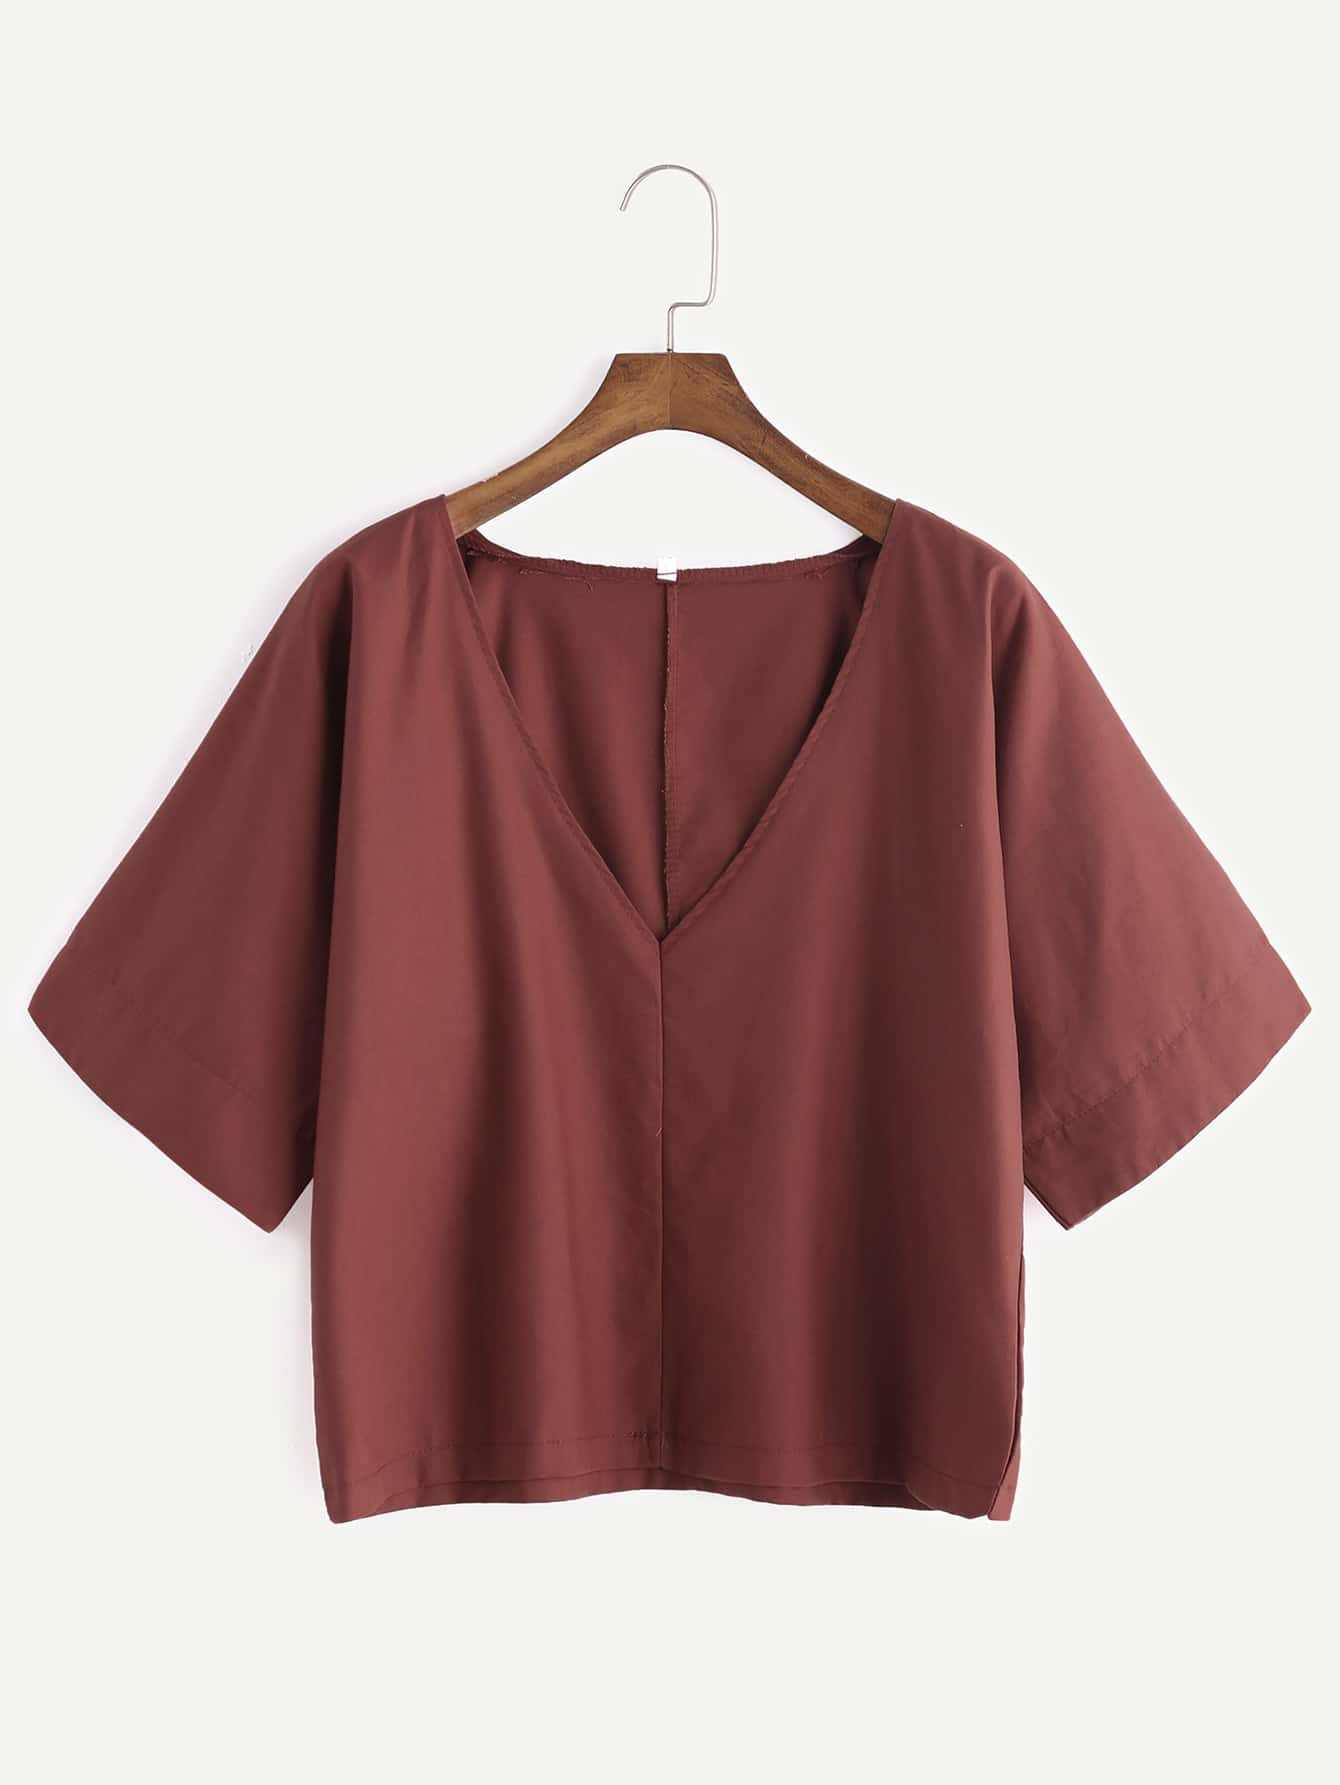 Brick Red V Neck Elbow Sleeve Blouse blouse161216101